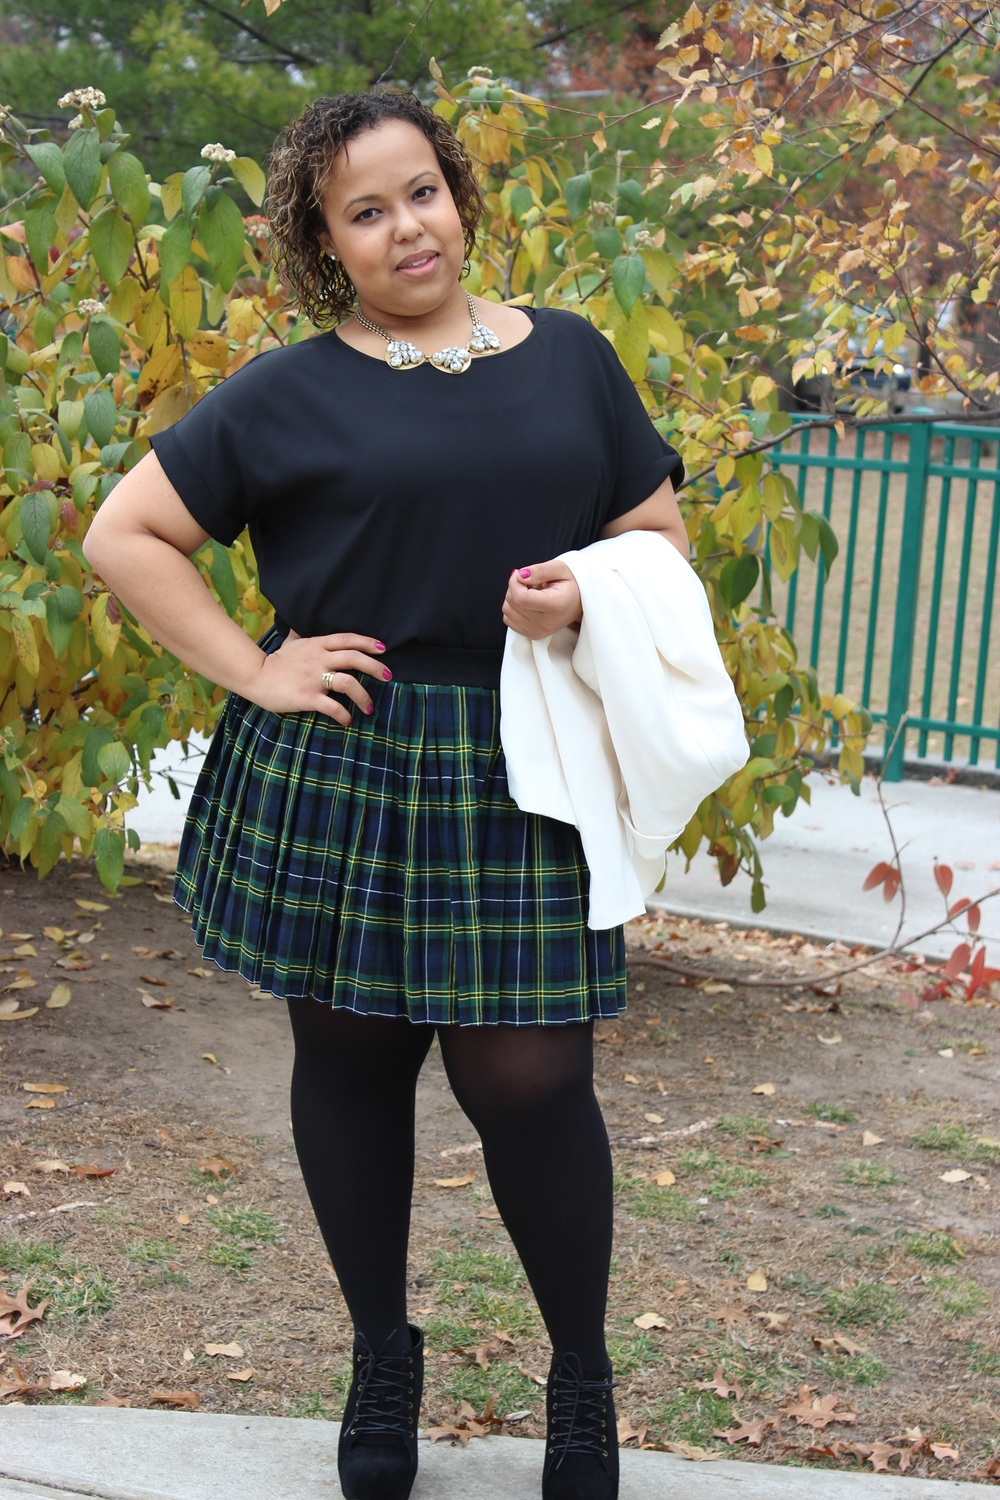 plaid skirt holding jacket.jpg